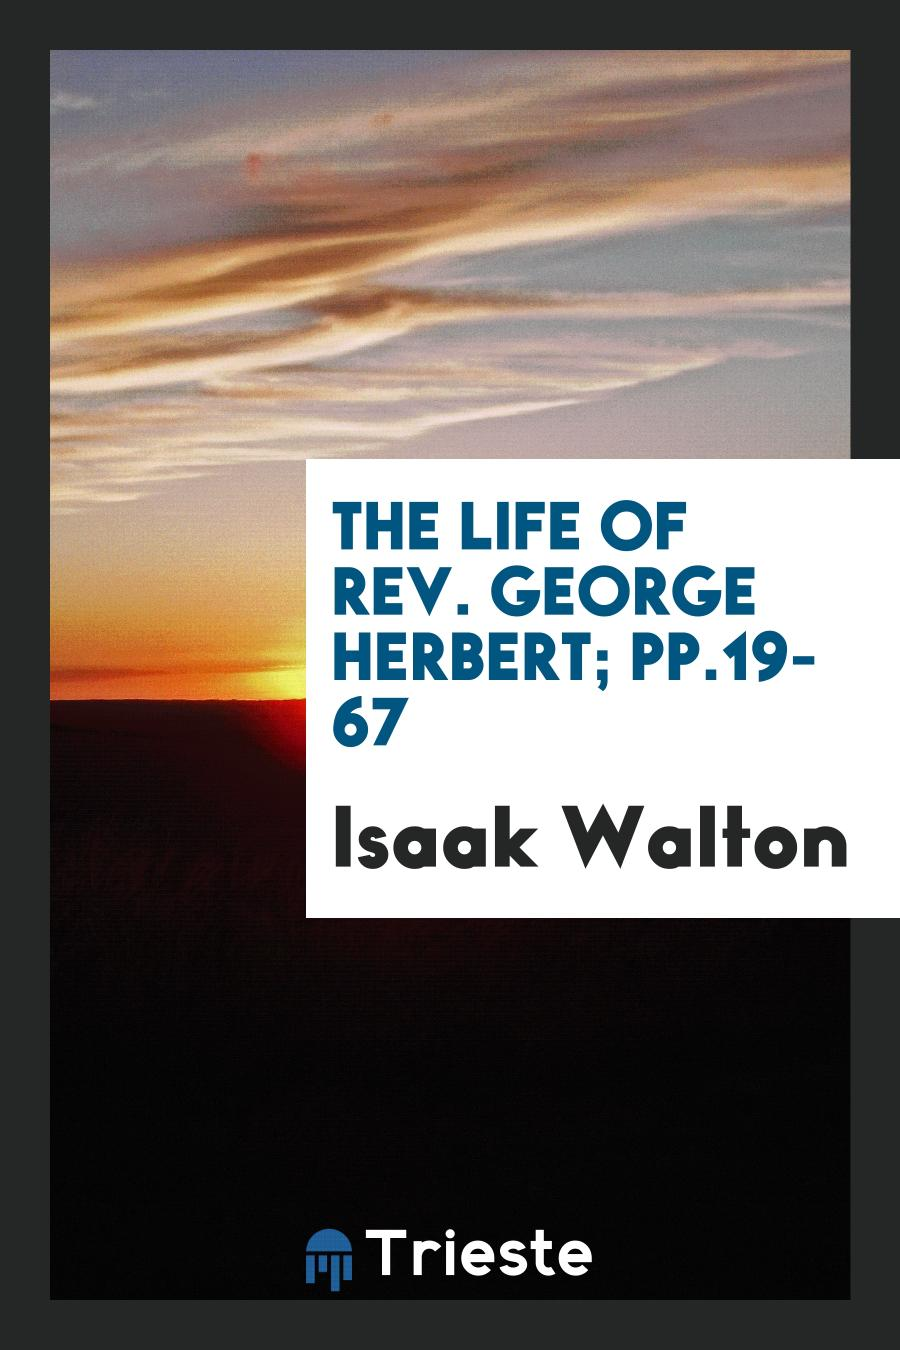 The Life of Rev. George Herbert; pp.19-67